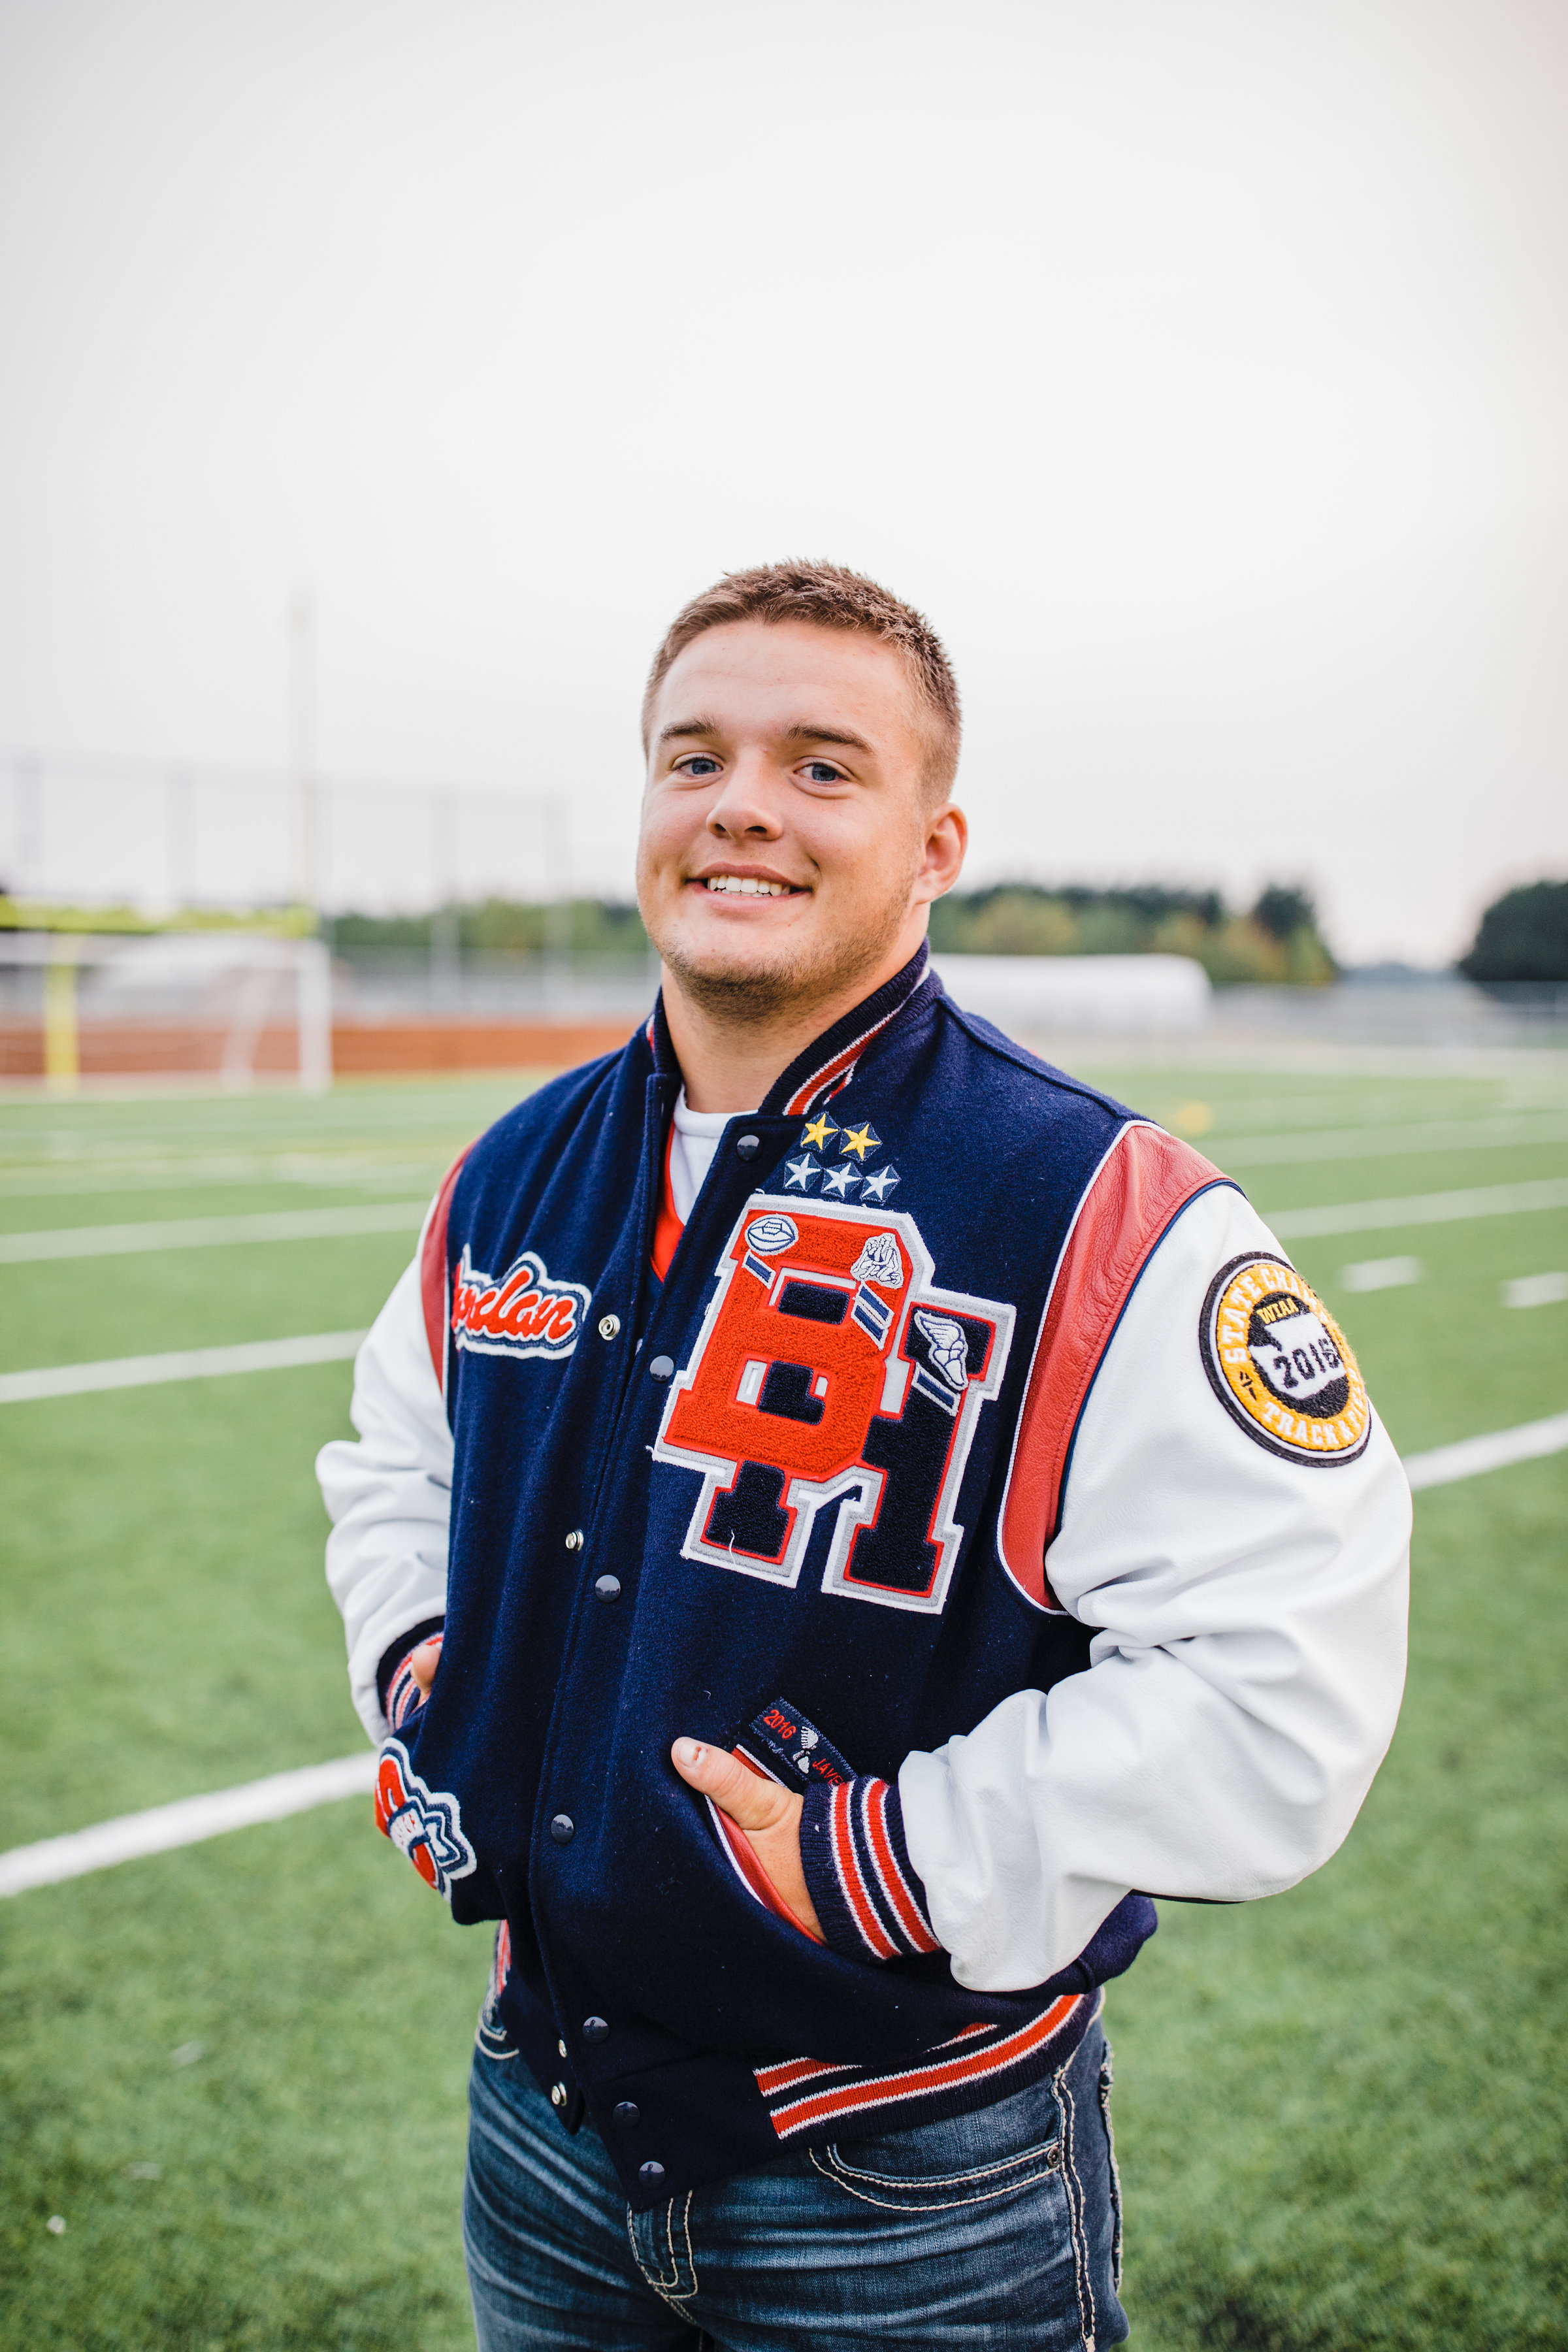 professional senior photo photographer football smiling football jacket field smiling